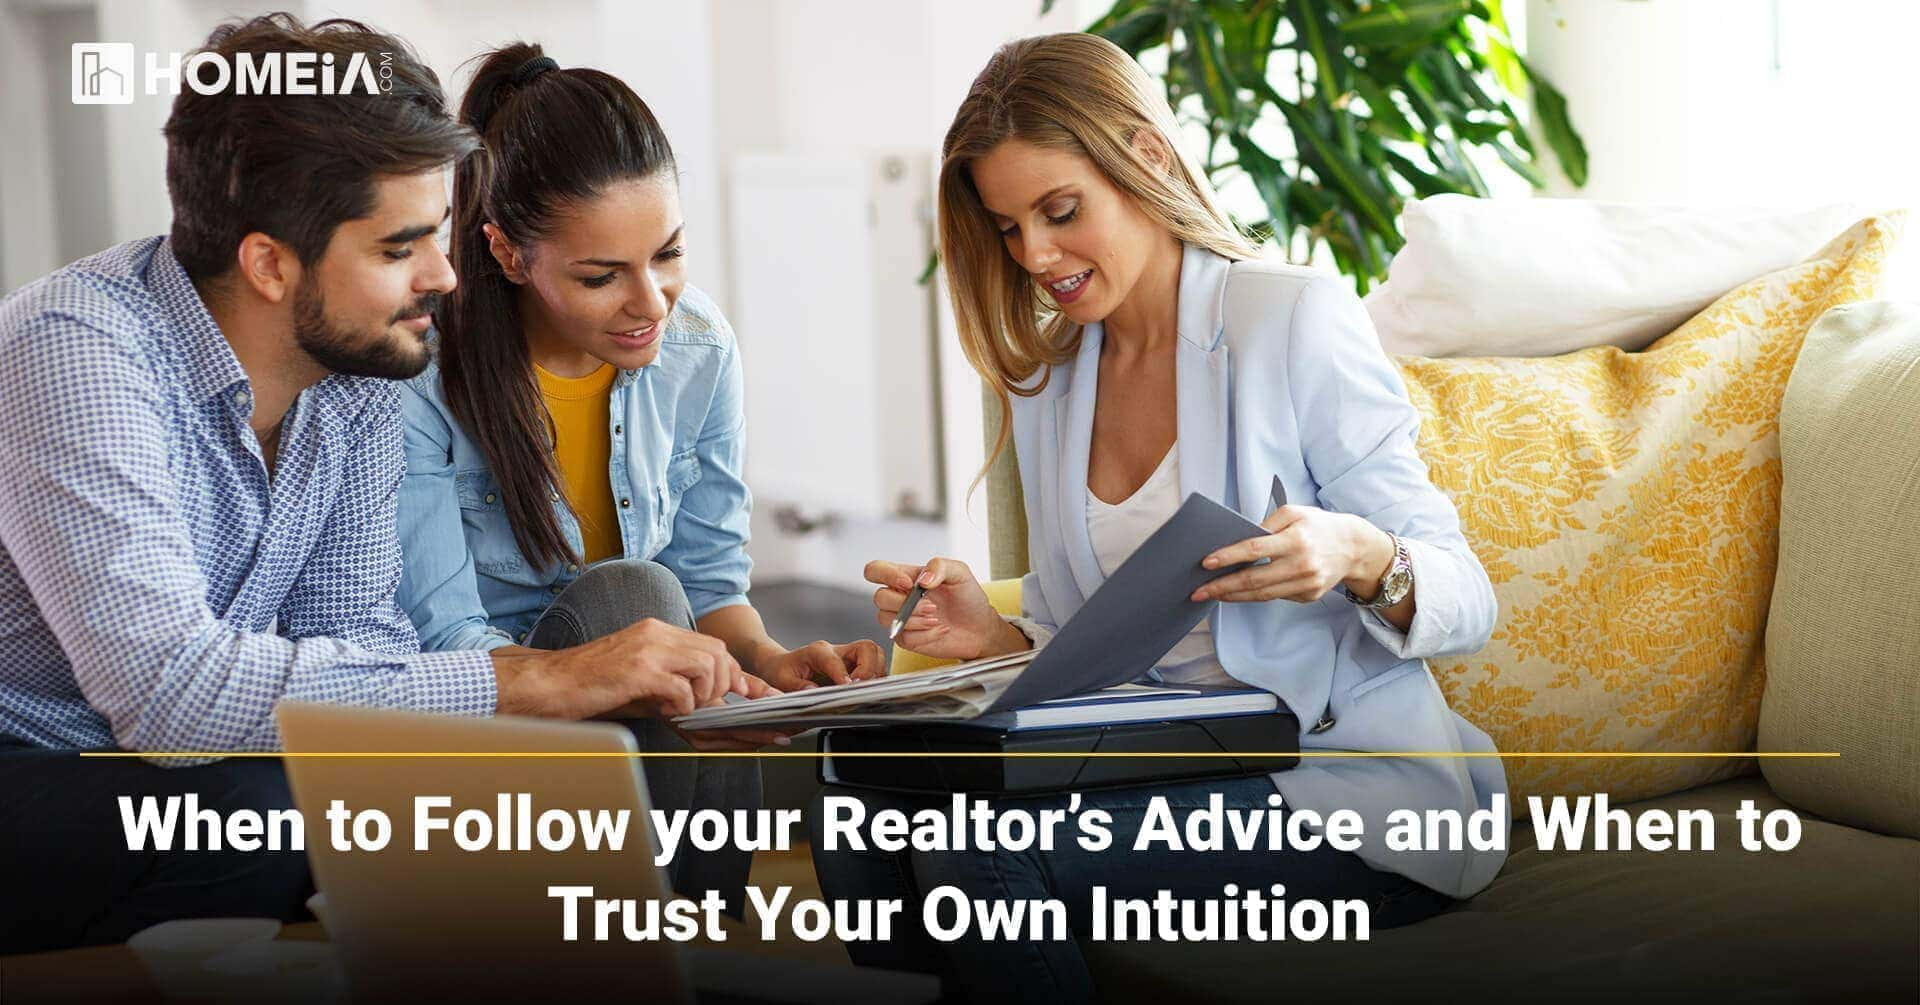 When to Follow your Realtor's Advice and When to Trust Your Own Intuition